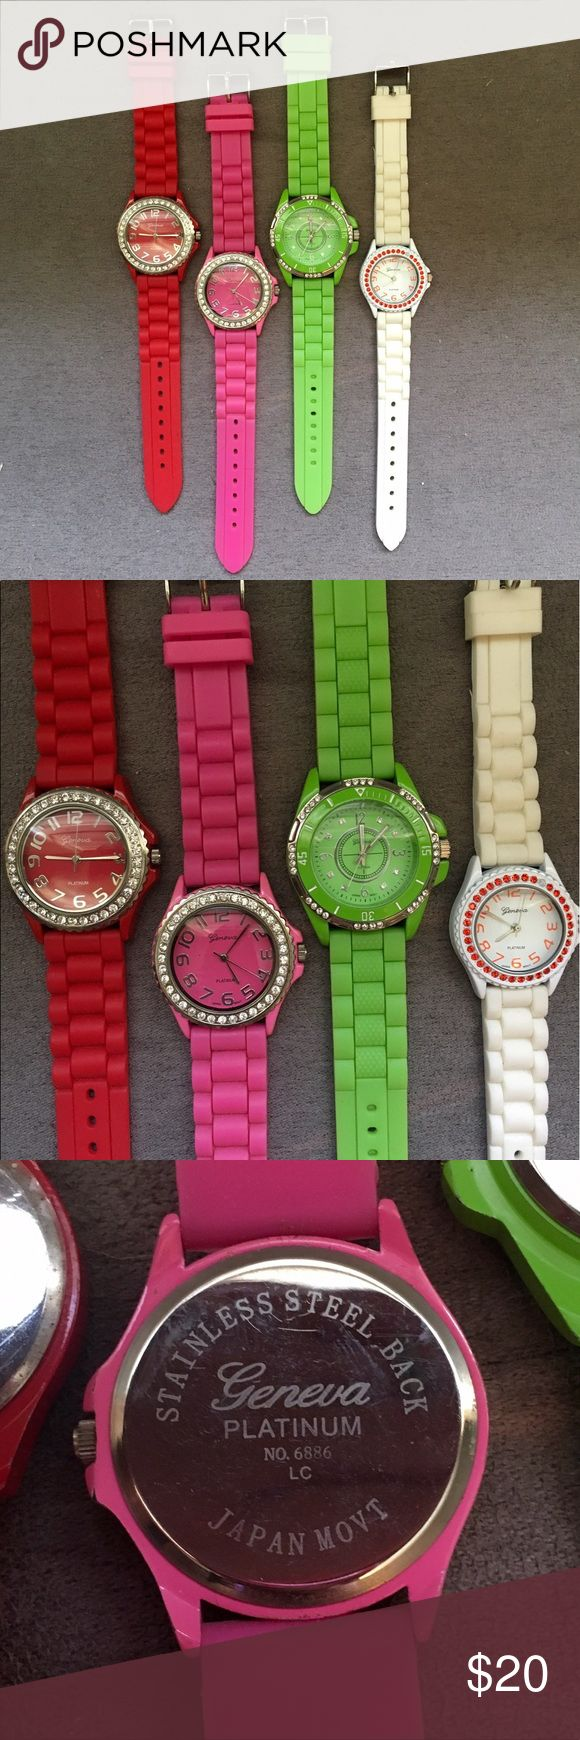 4 Geneva rubber watches They are stainless steel, have rubber bands, they all have each rhinestone except the white watch is missing one red one. Each worn about 3x. Need batteries. You get all! Geneva Platinum Accessories Watches